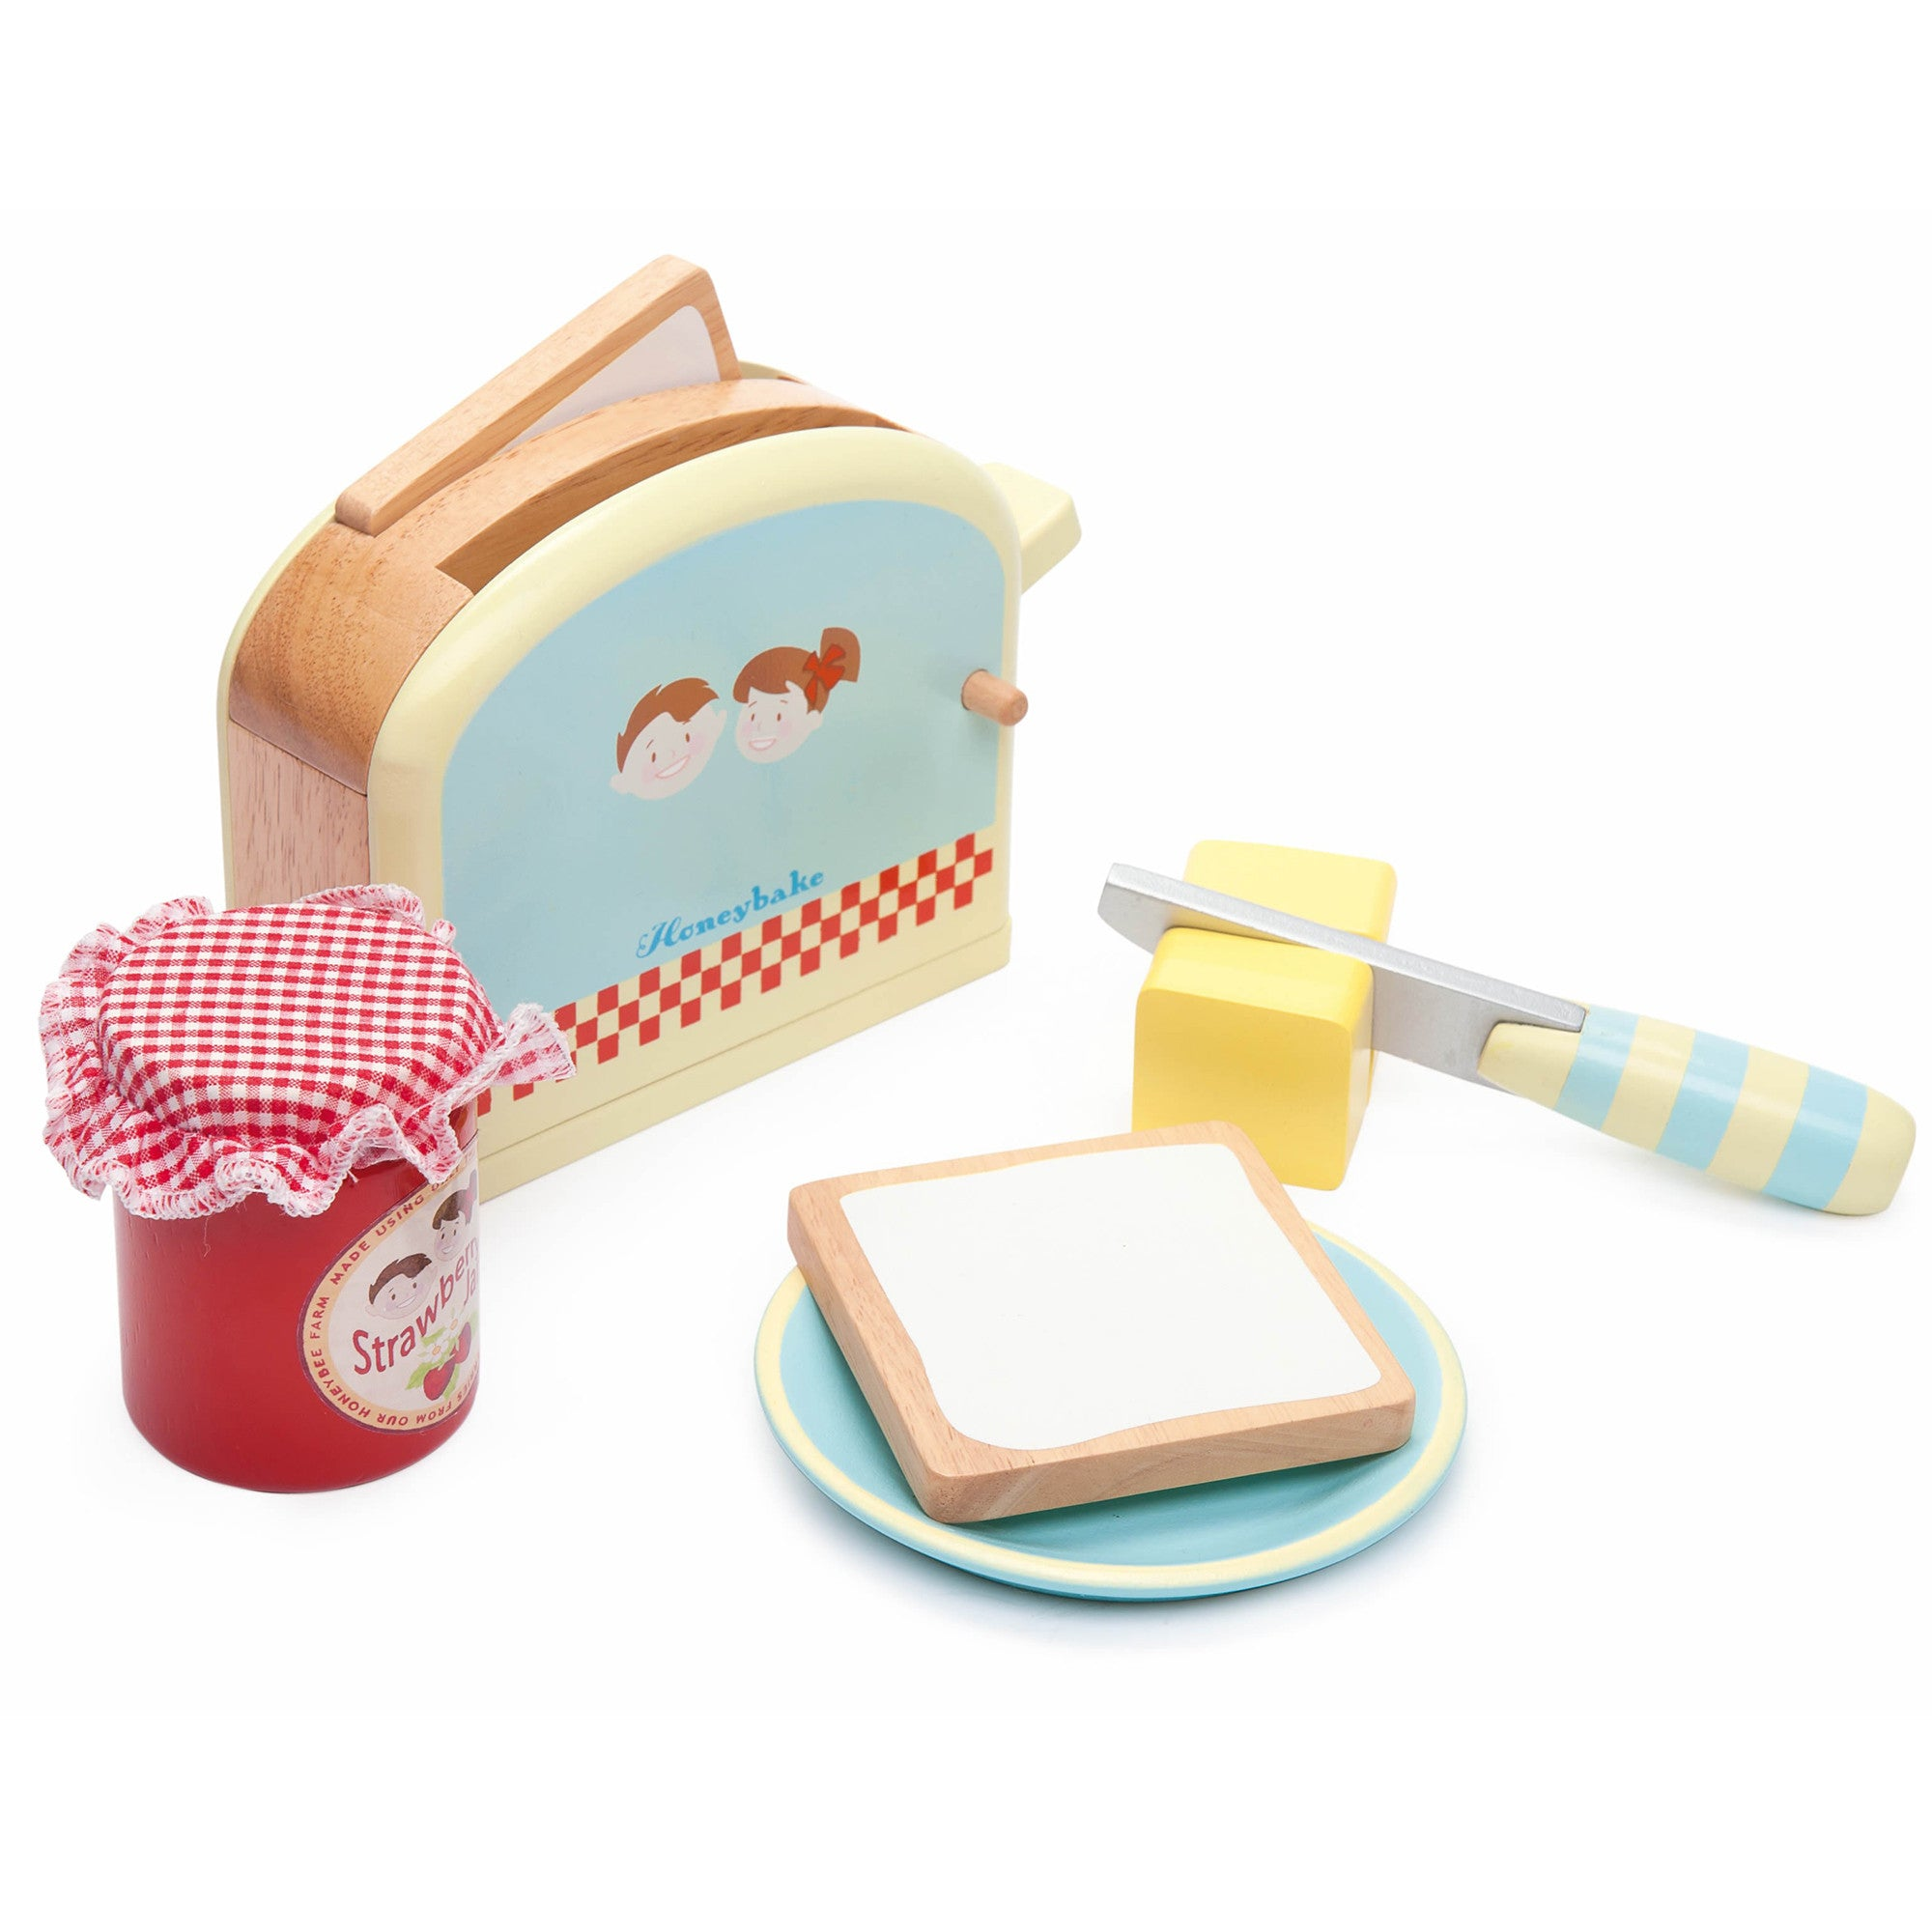 Le Toy Van Honeybake Toaster Set   - Le Toy Van - Little Earth Nest - 1